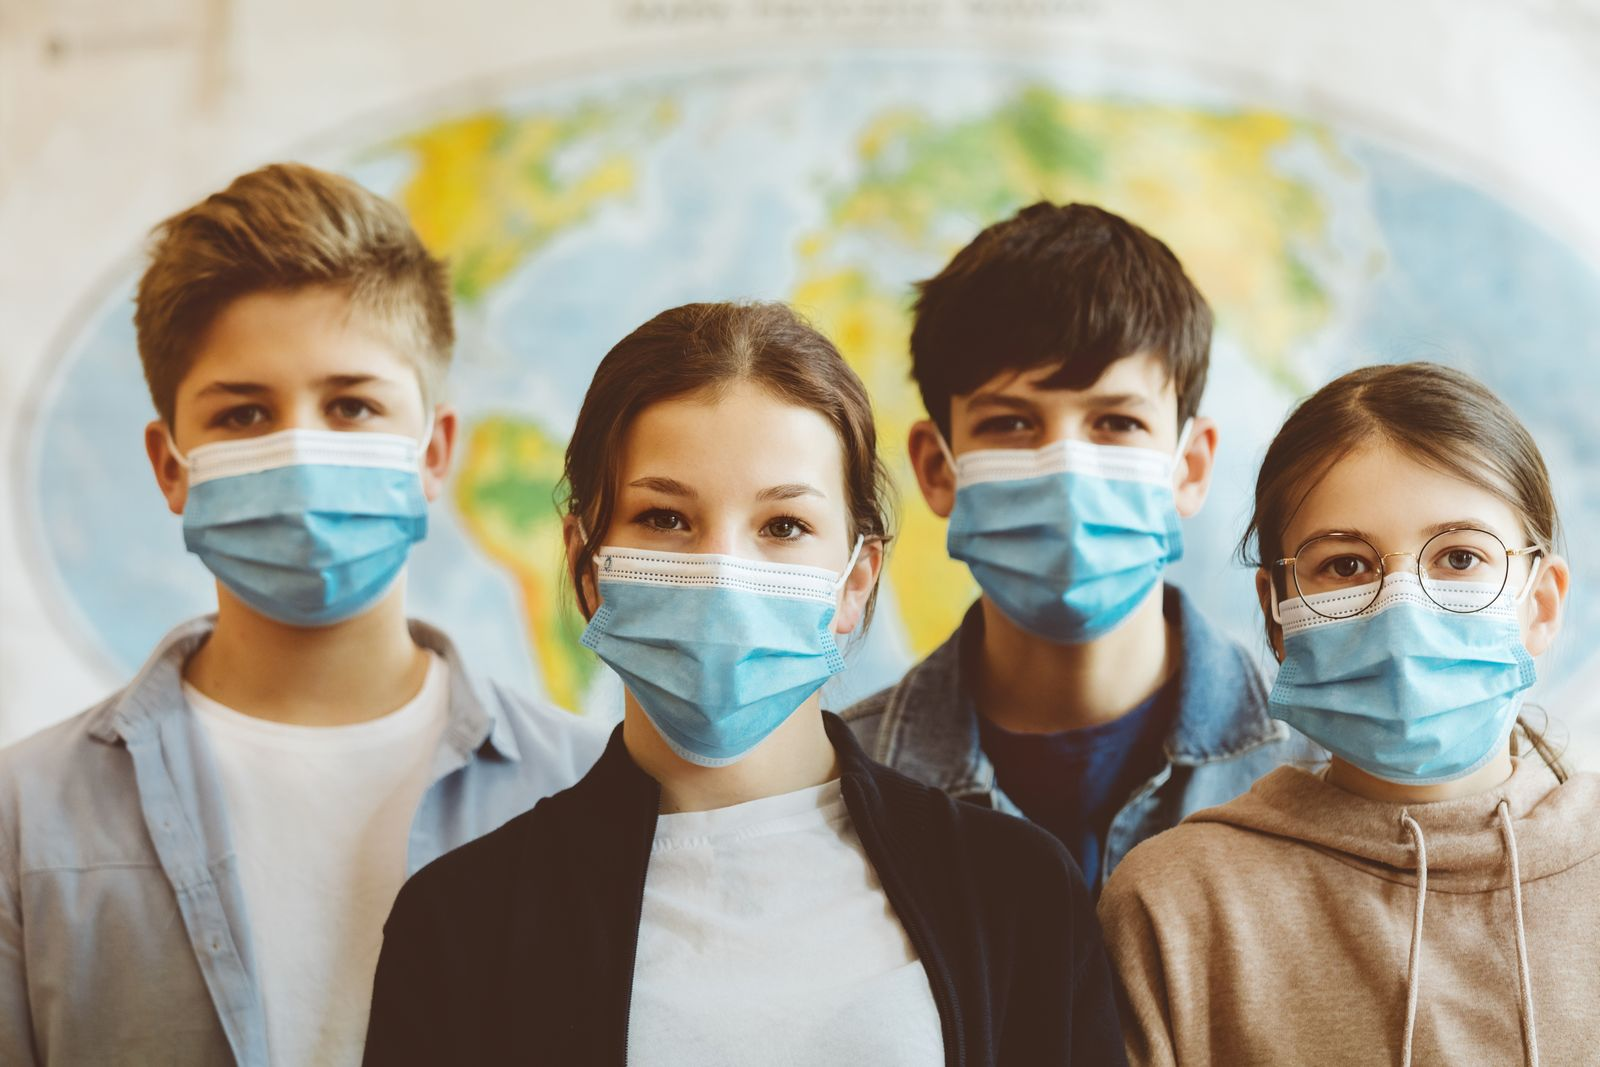 Group of high school students at school, wearing N95 Face masks.